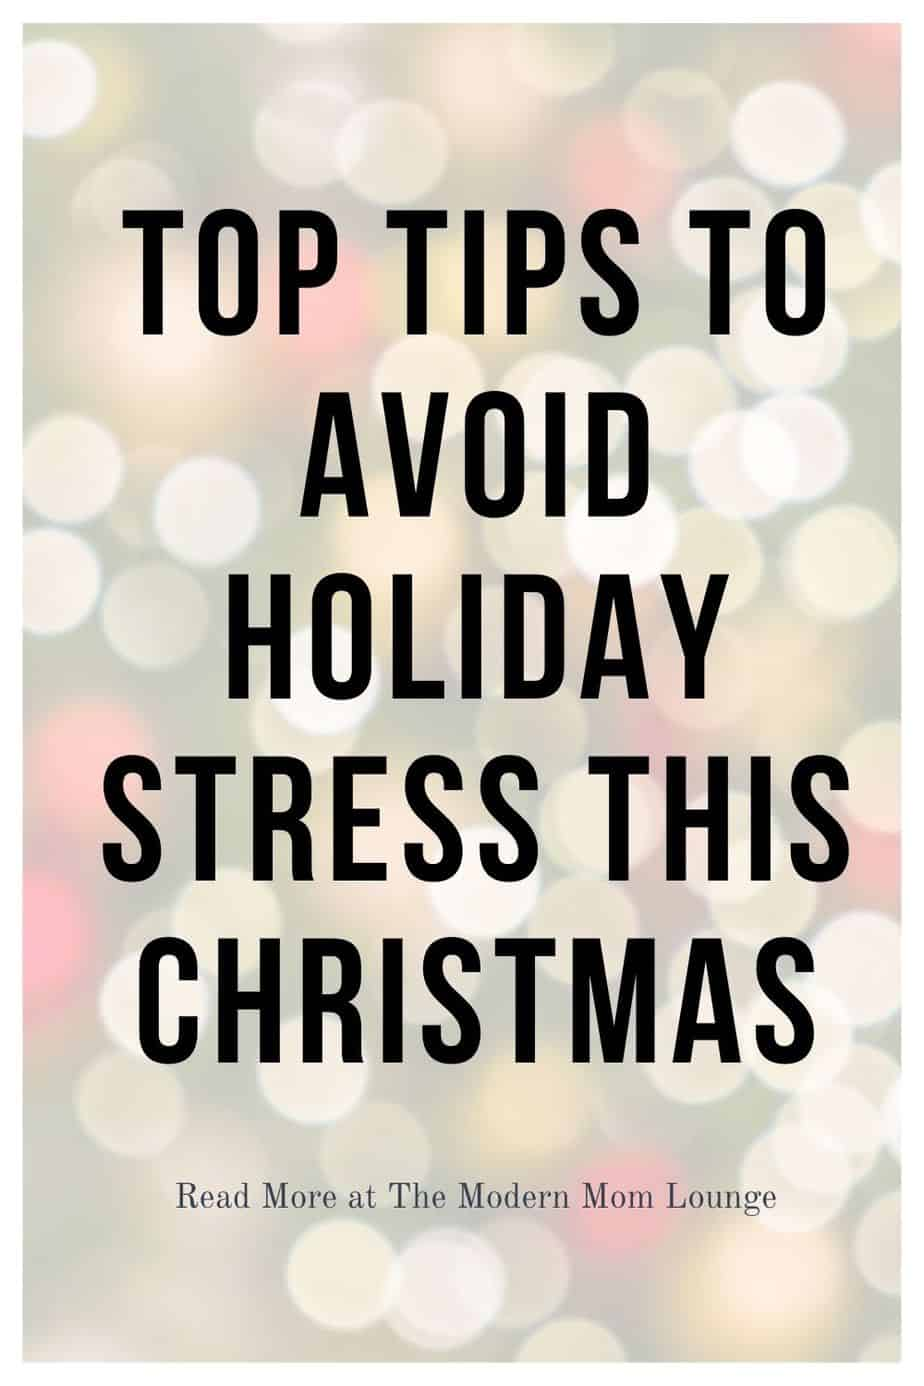 Top Tips to Avoid Holiday Stress This Christmas